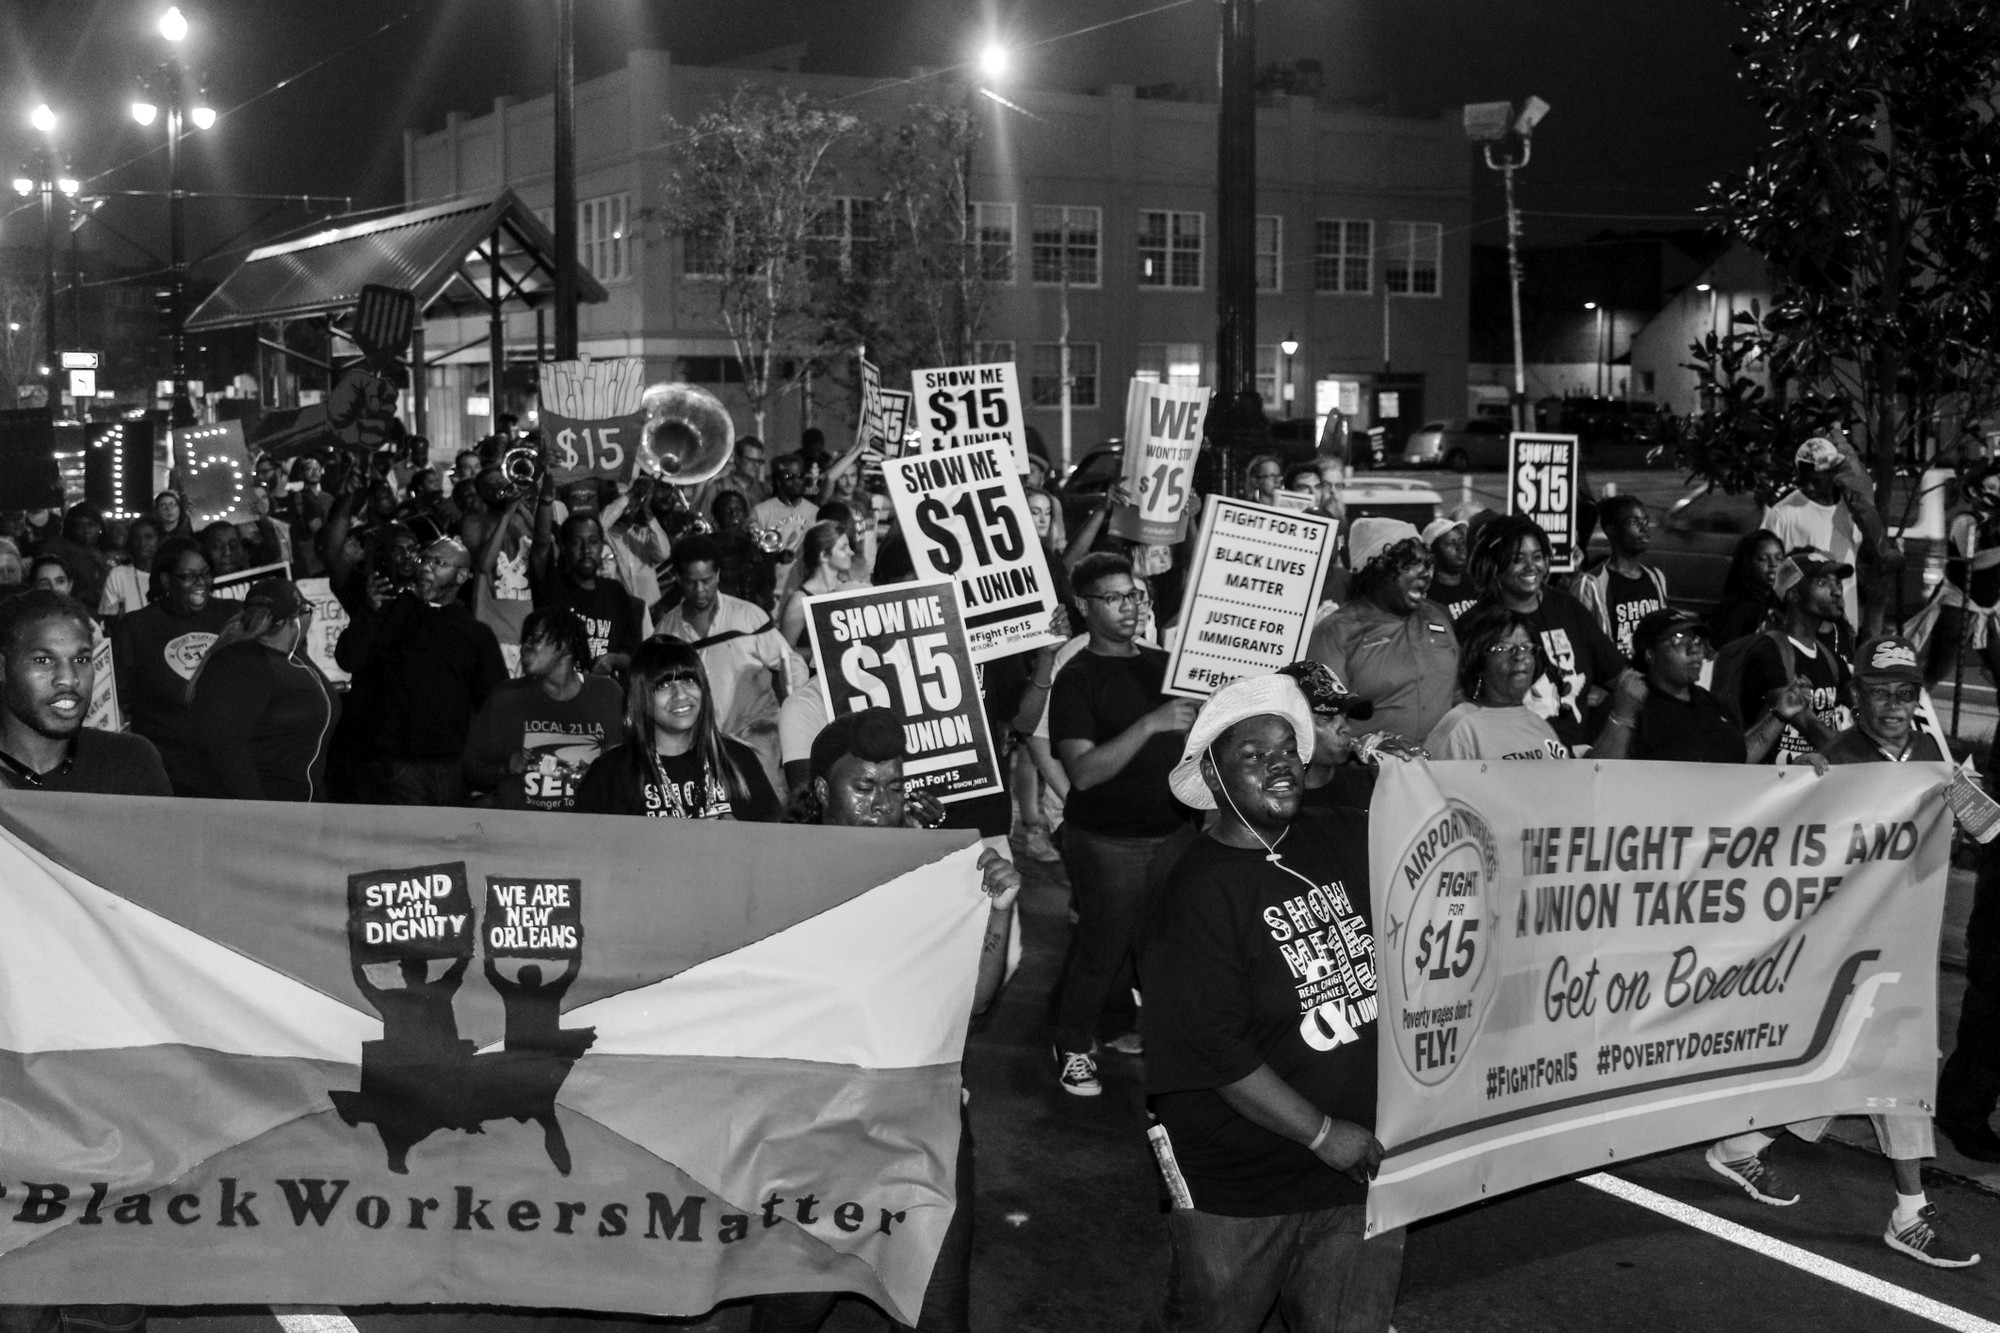 Members of the FightForFifteen activist group march to raise the federal minimum wage to $15 per hour. Many of the Founding Fathers of the United States wrote extensively about the need for a politically engaged populace. Photo credit: Matthew Dietrich